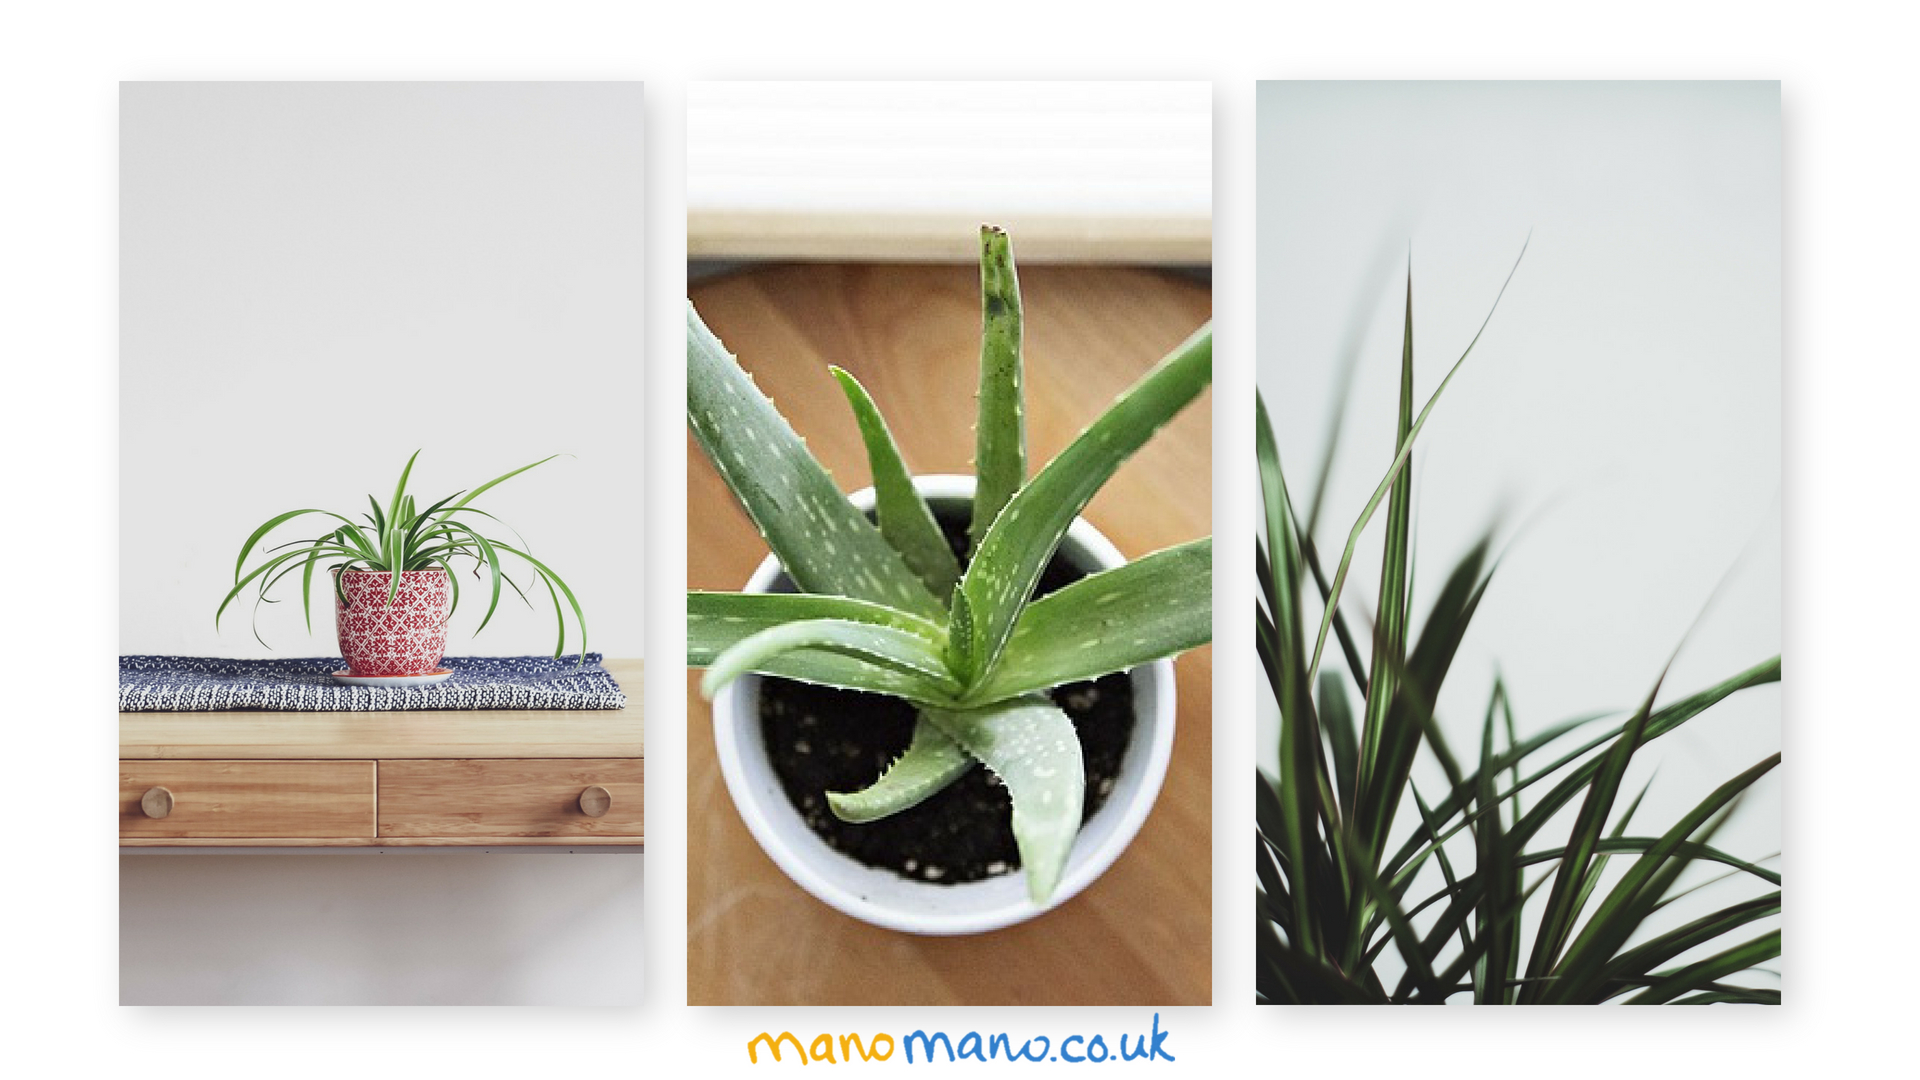 Top 20 Useful Indoor House Plants - The Handy Mano